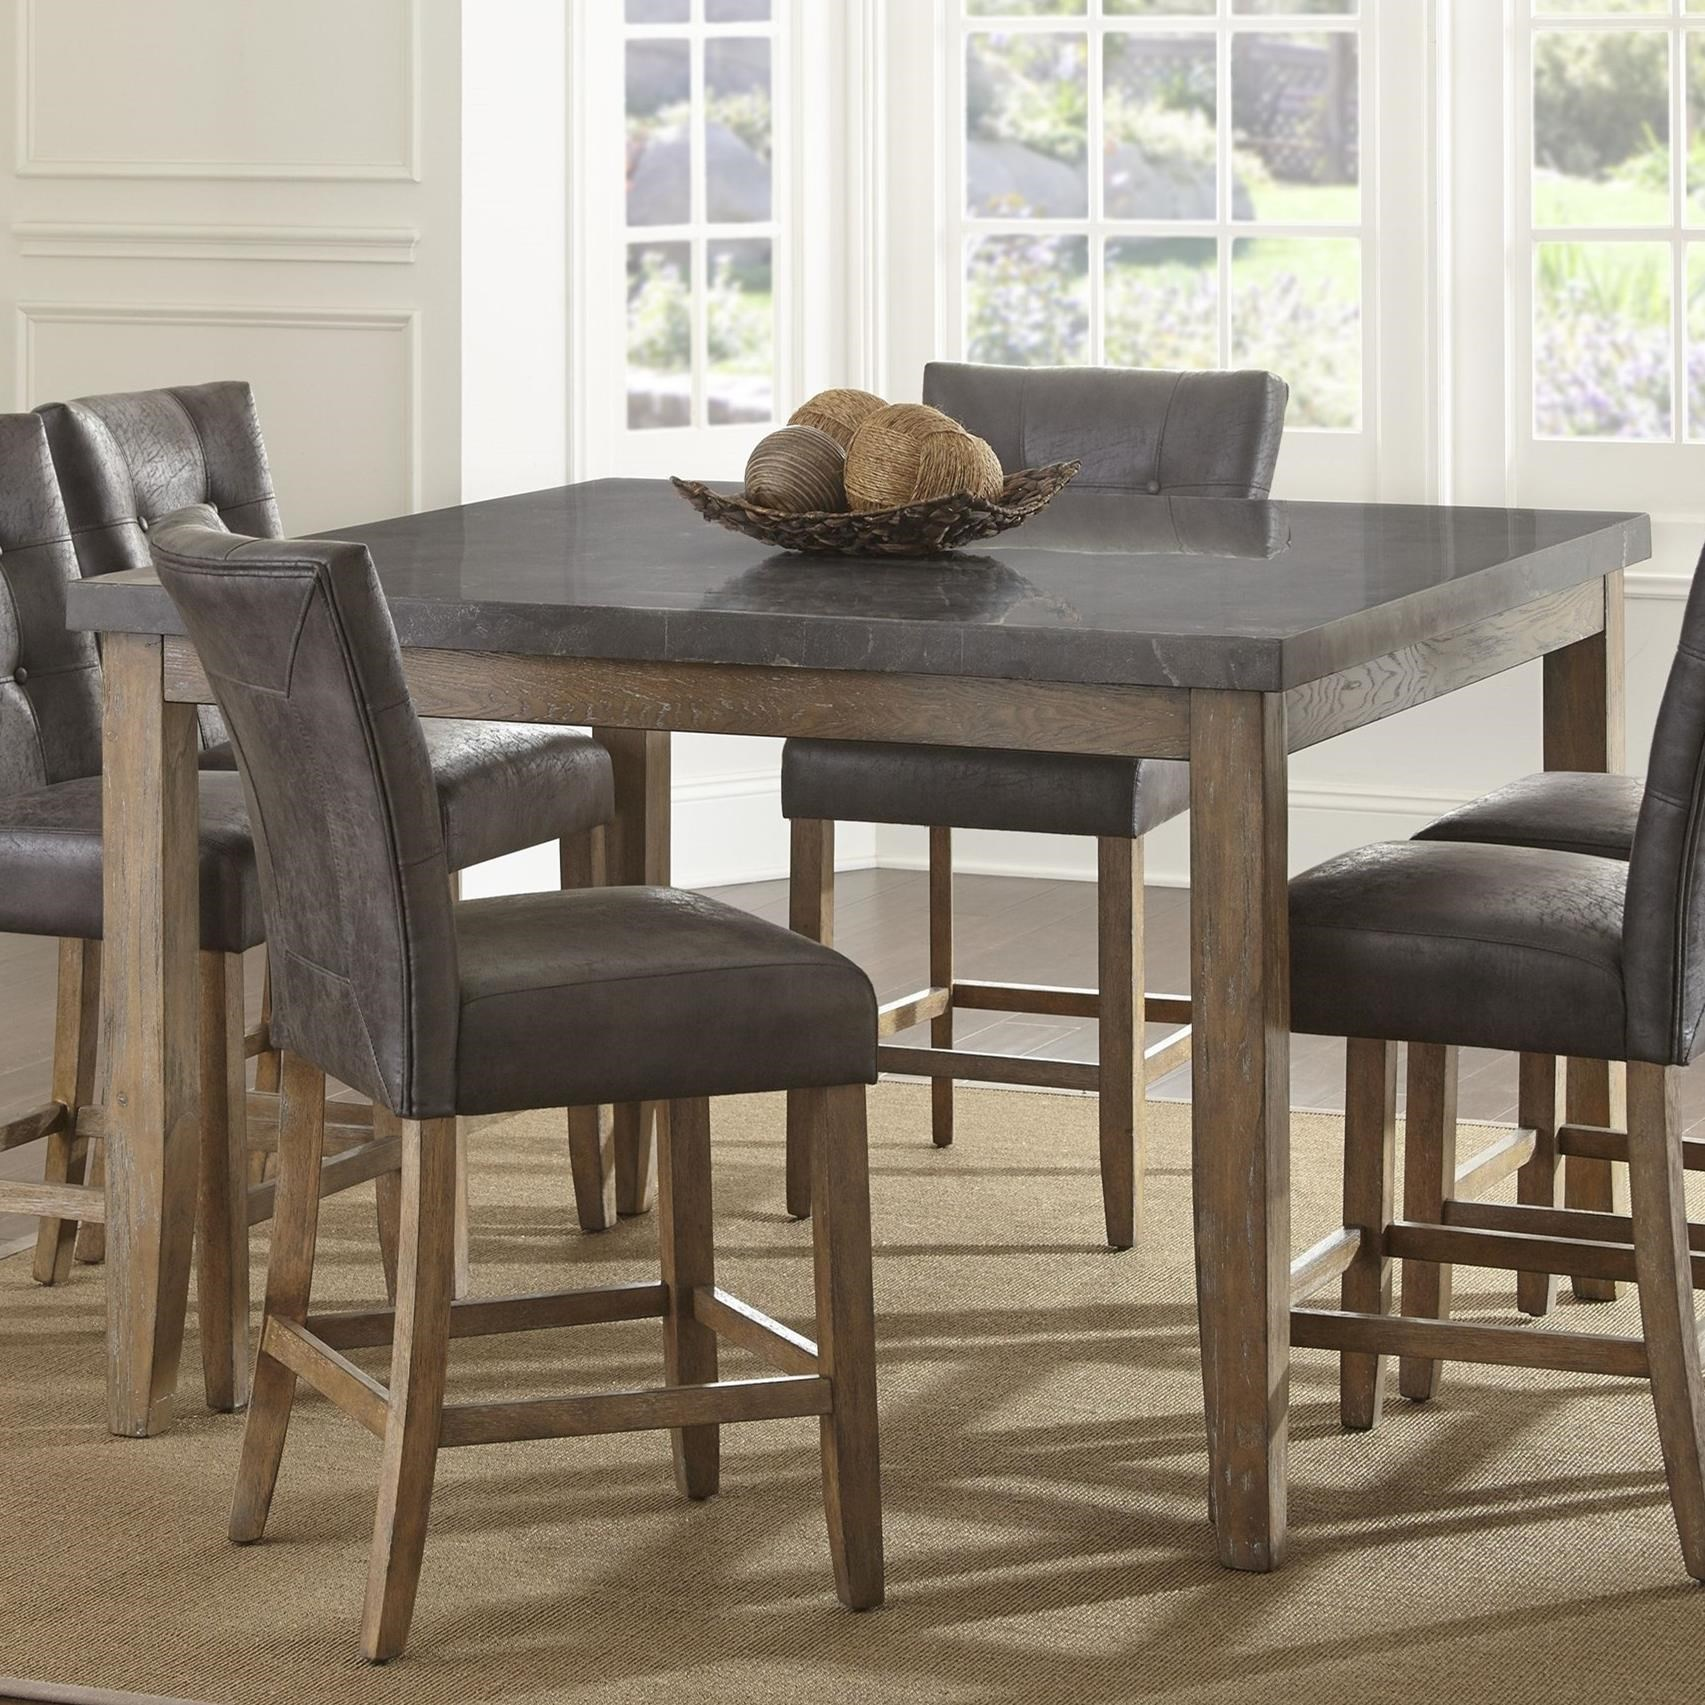 Steve Silver Debby Square Dining Table   Item Number: DB5454MT+DB600TL